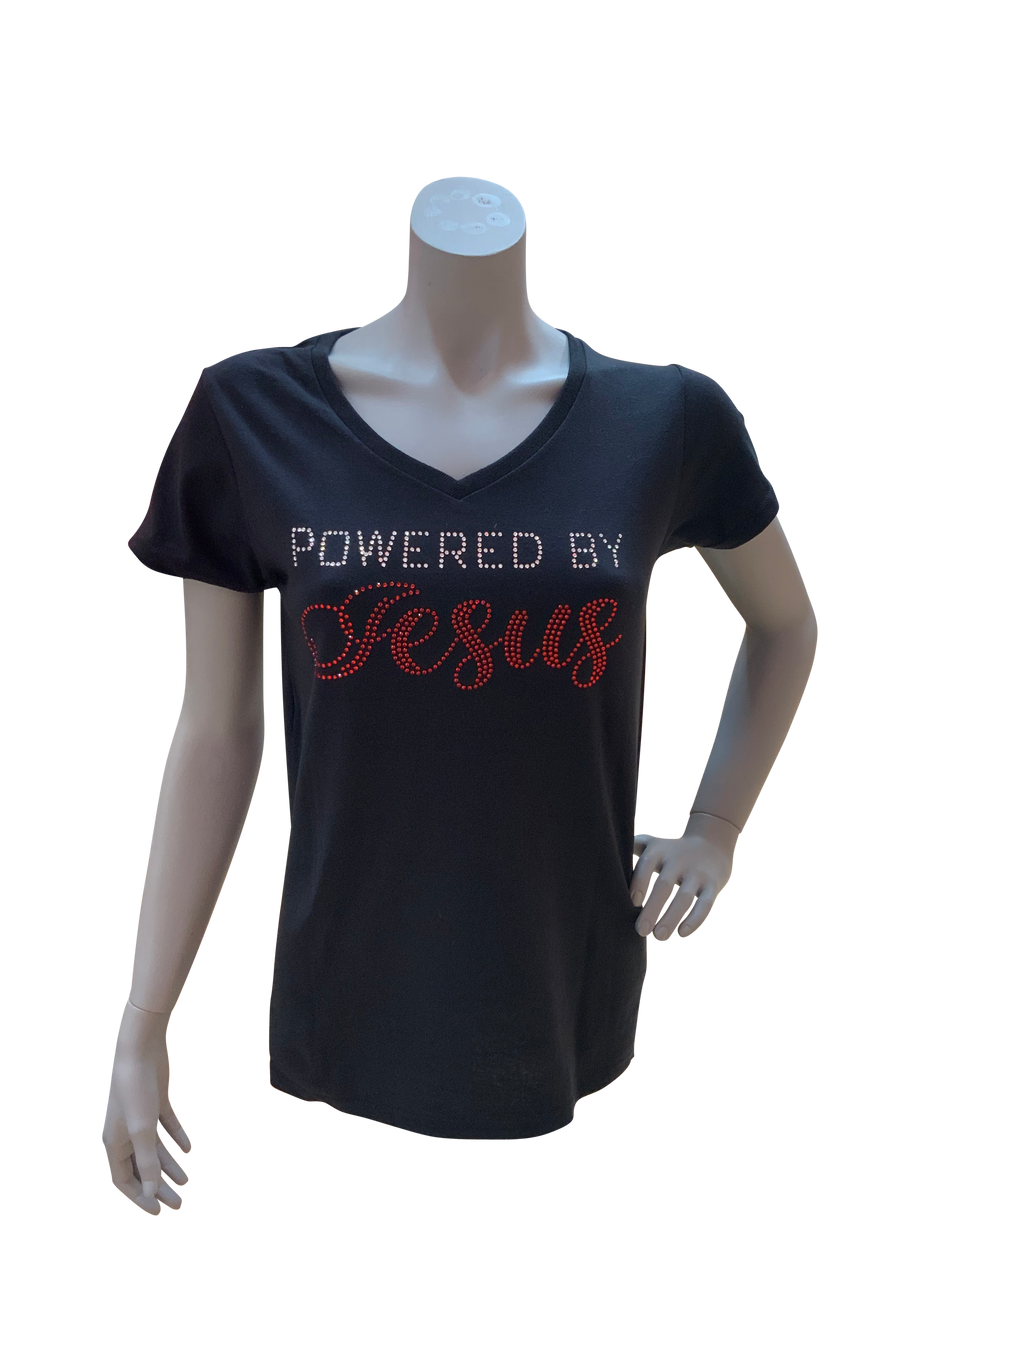 Powered by Jesus Rhinestone V-Neck Tee (Pick up In Store)